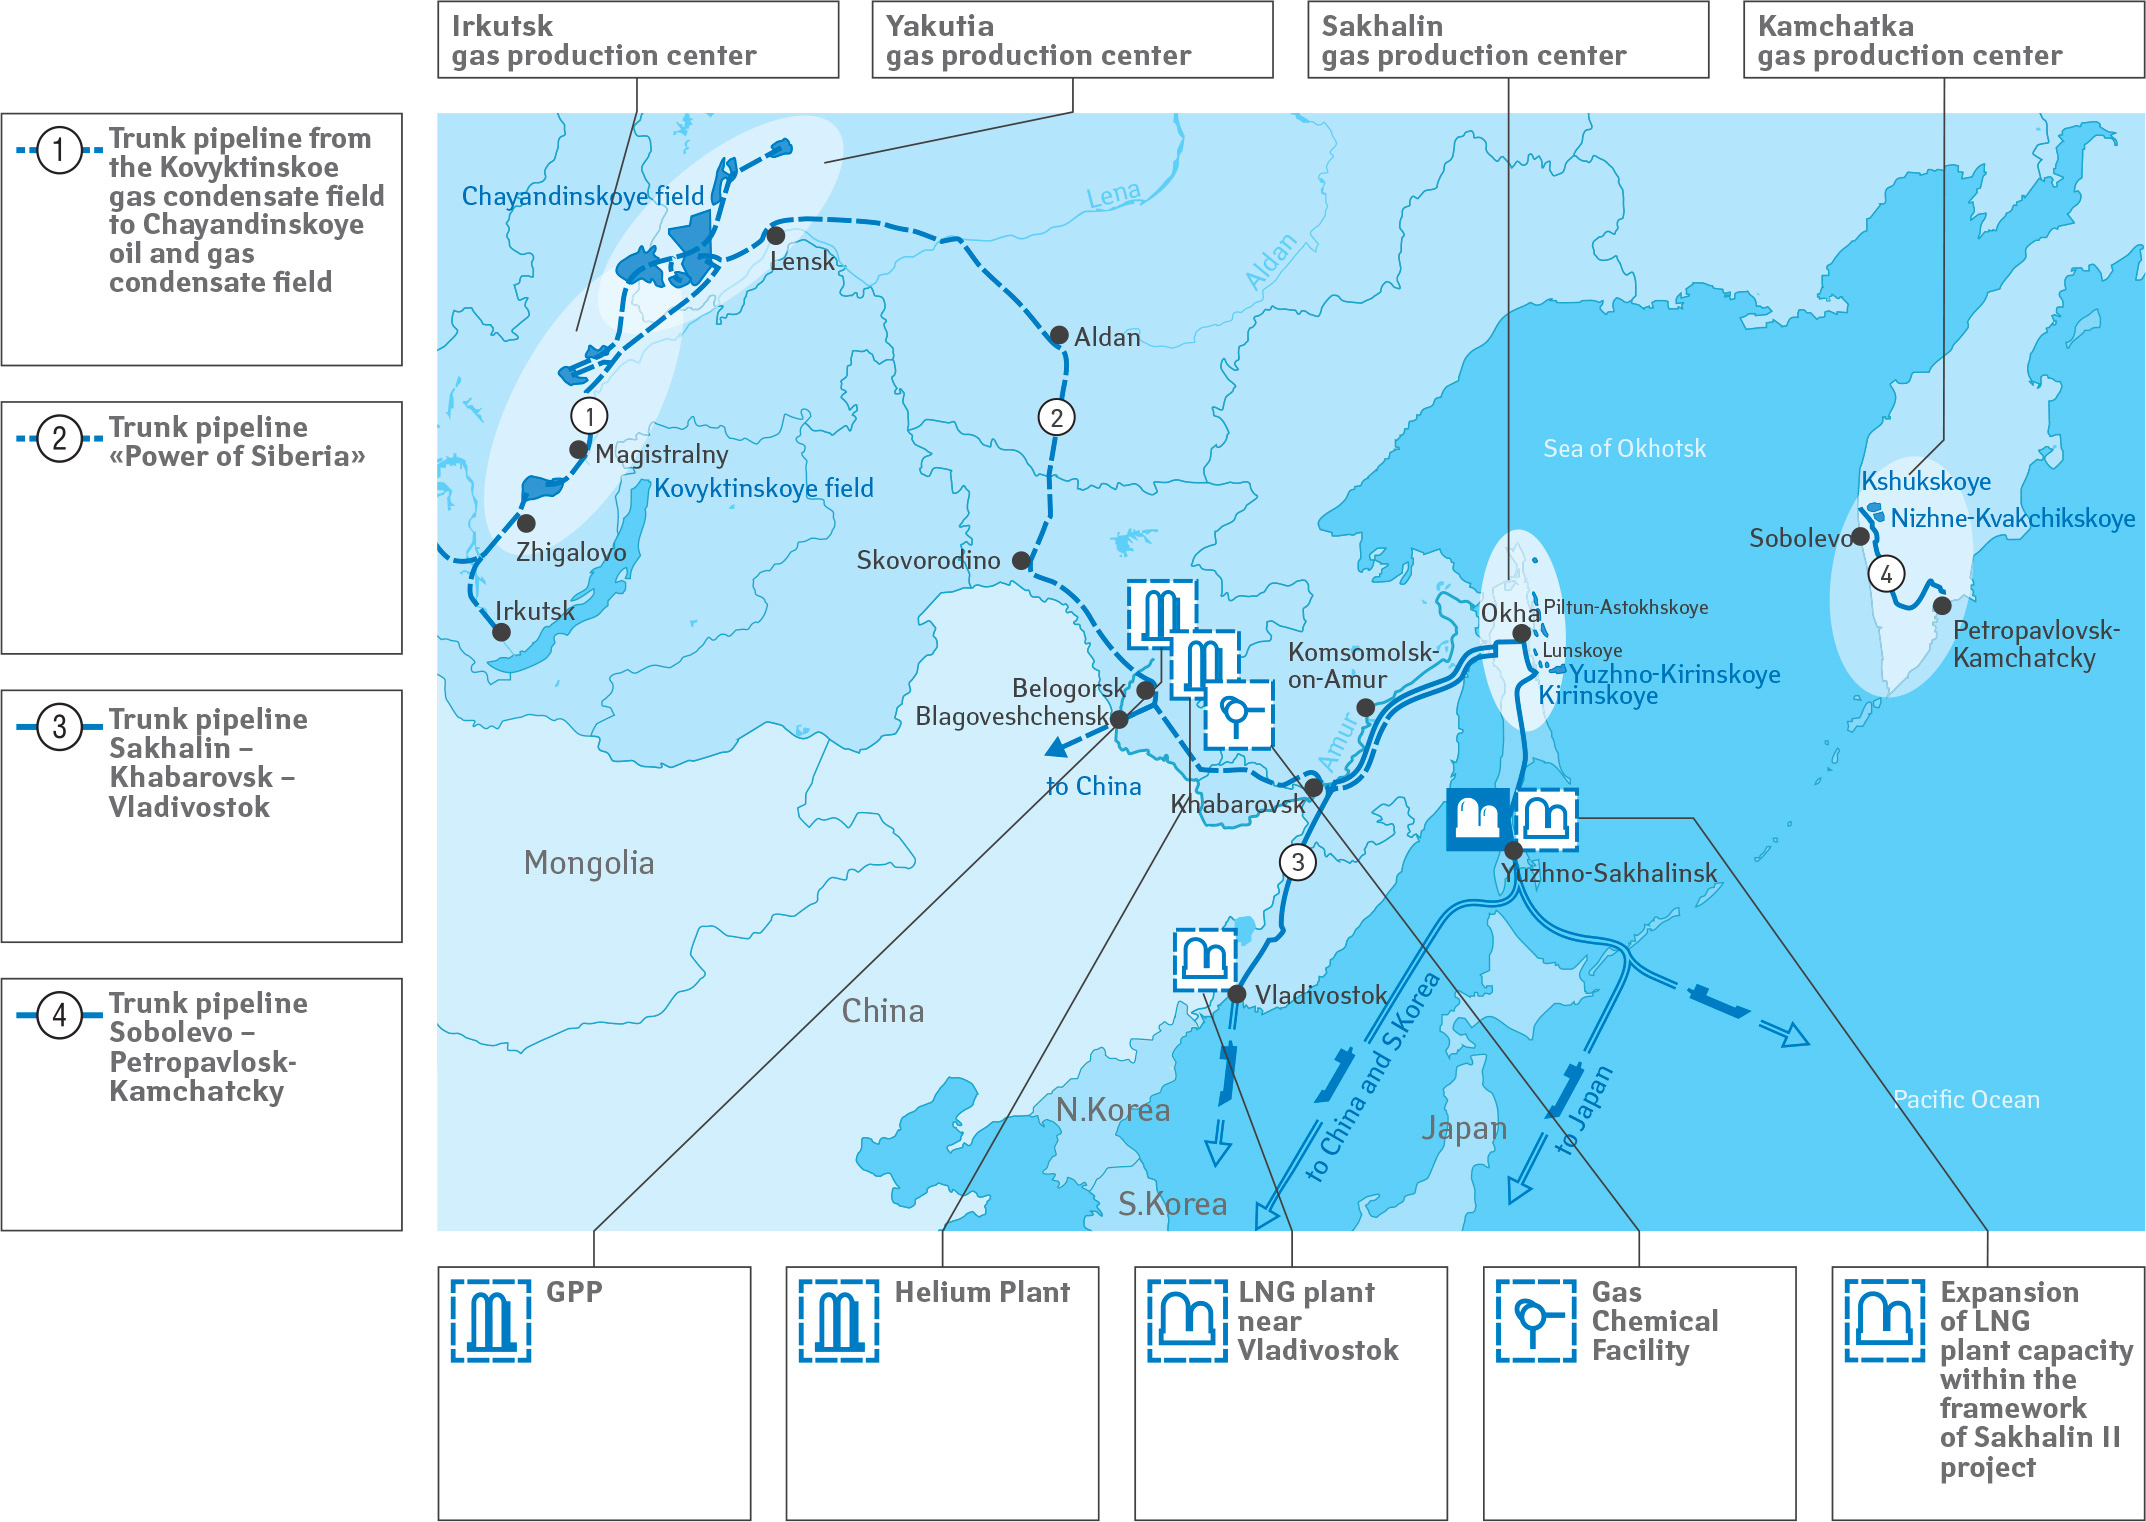 Gazprom Plan of resources development in the Eastern Siberia and Far East of Russia